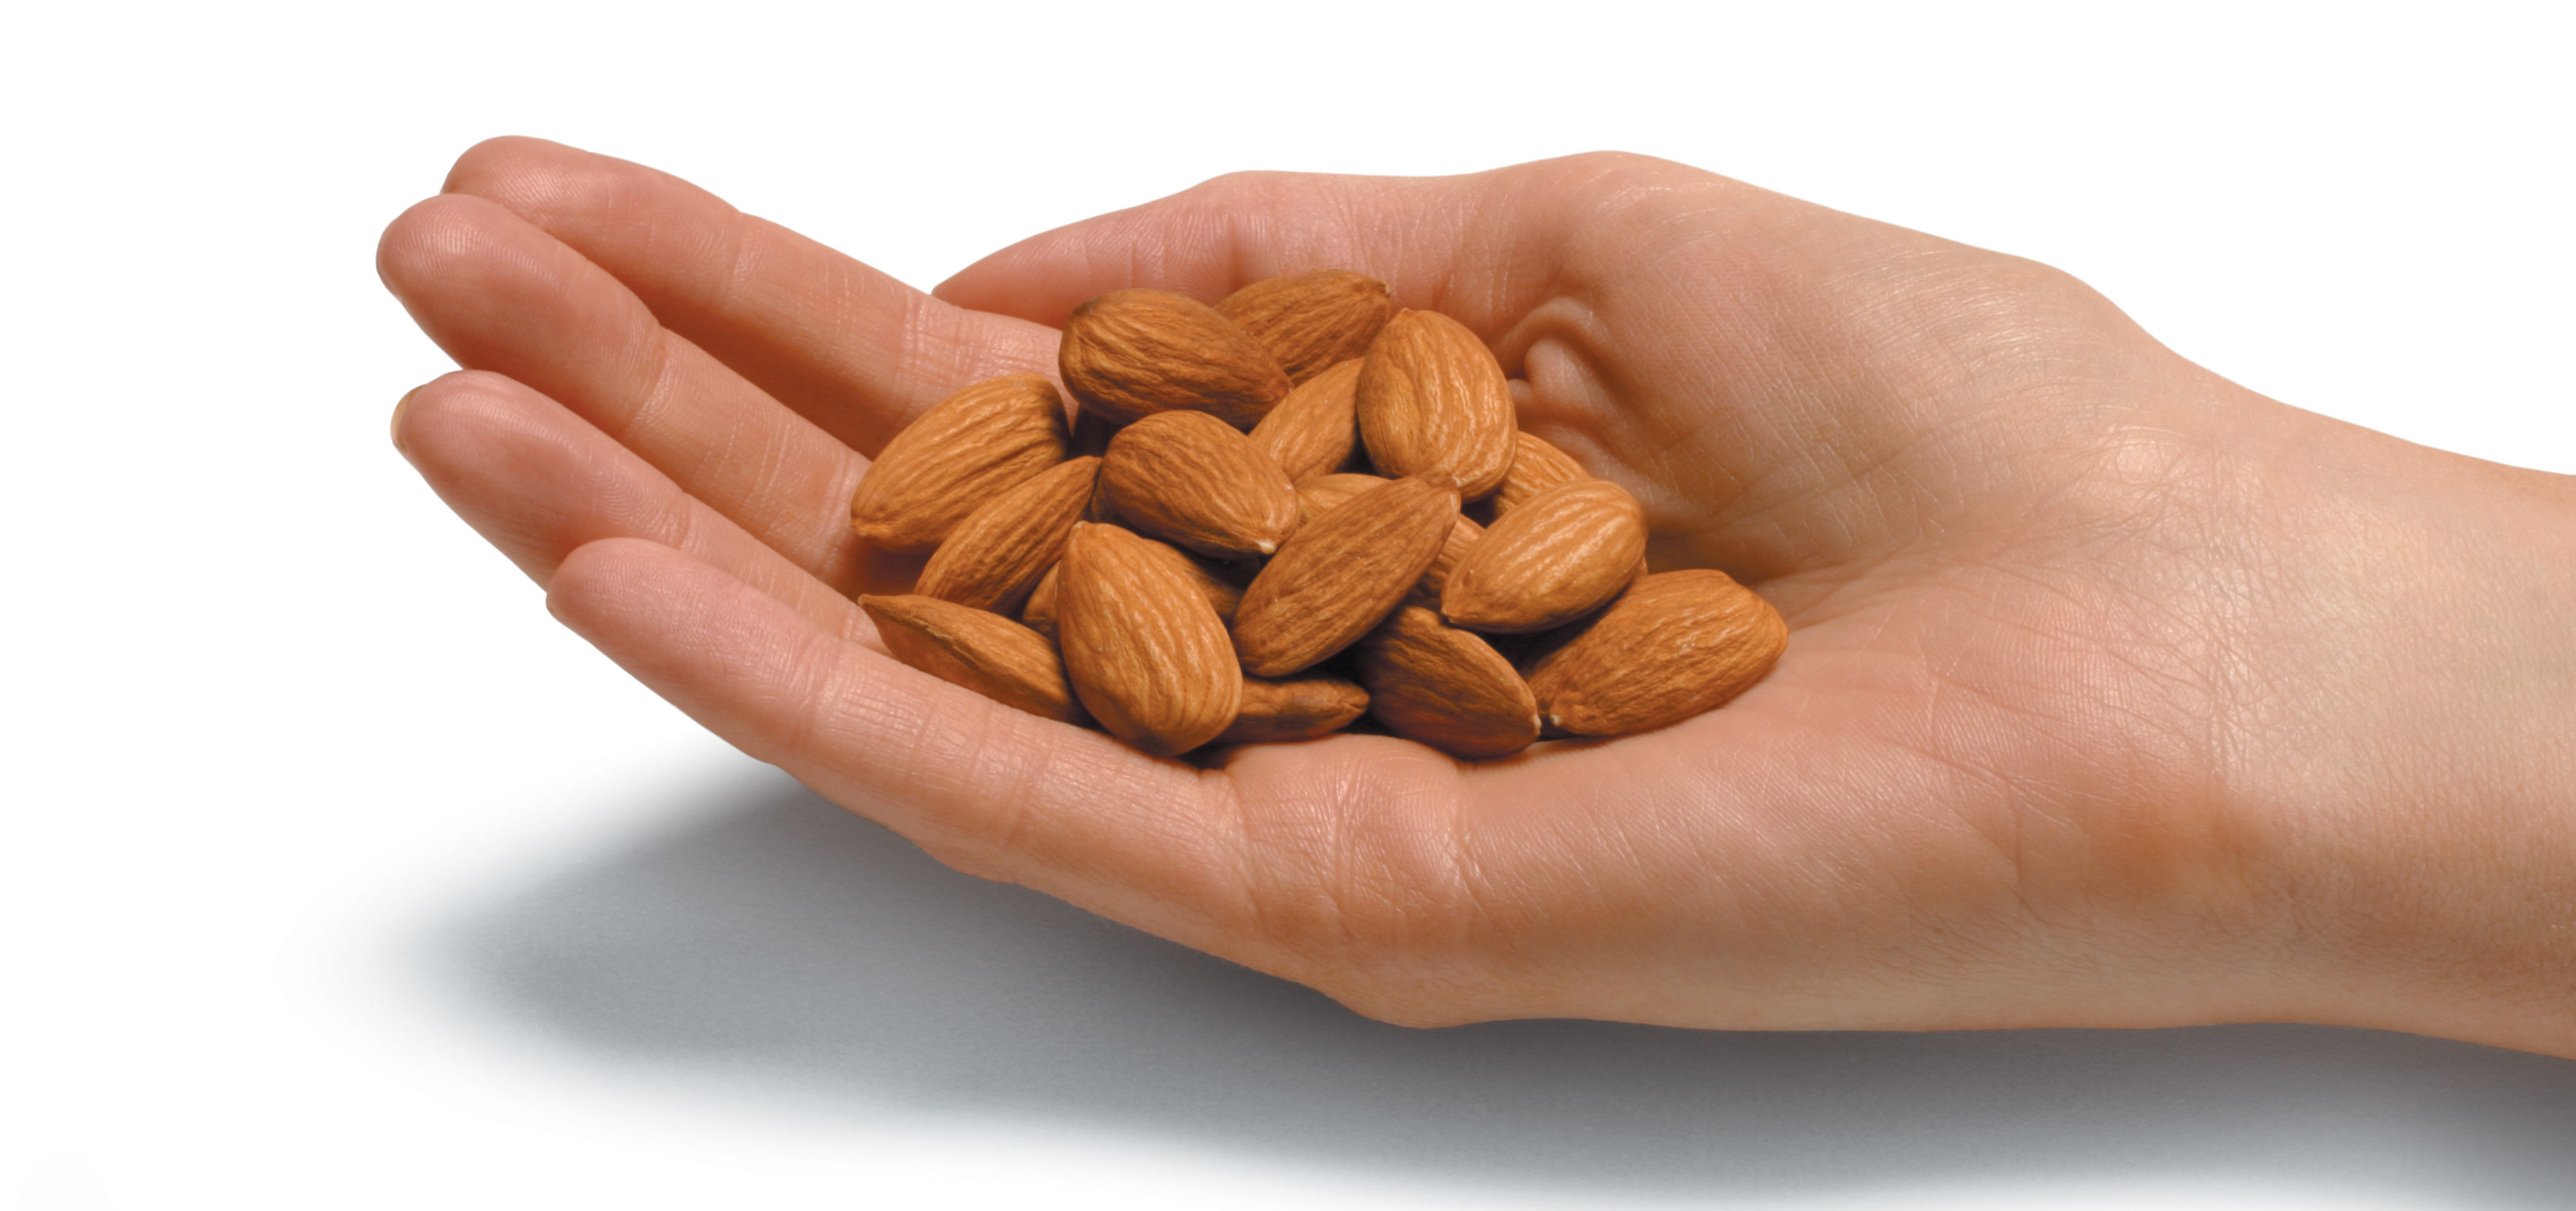 hand holding almonds